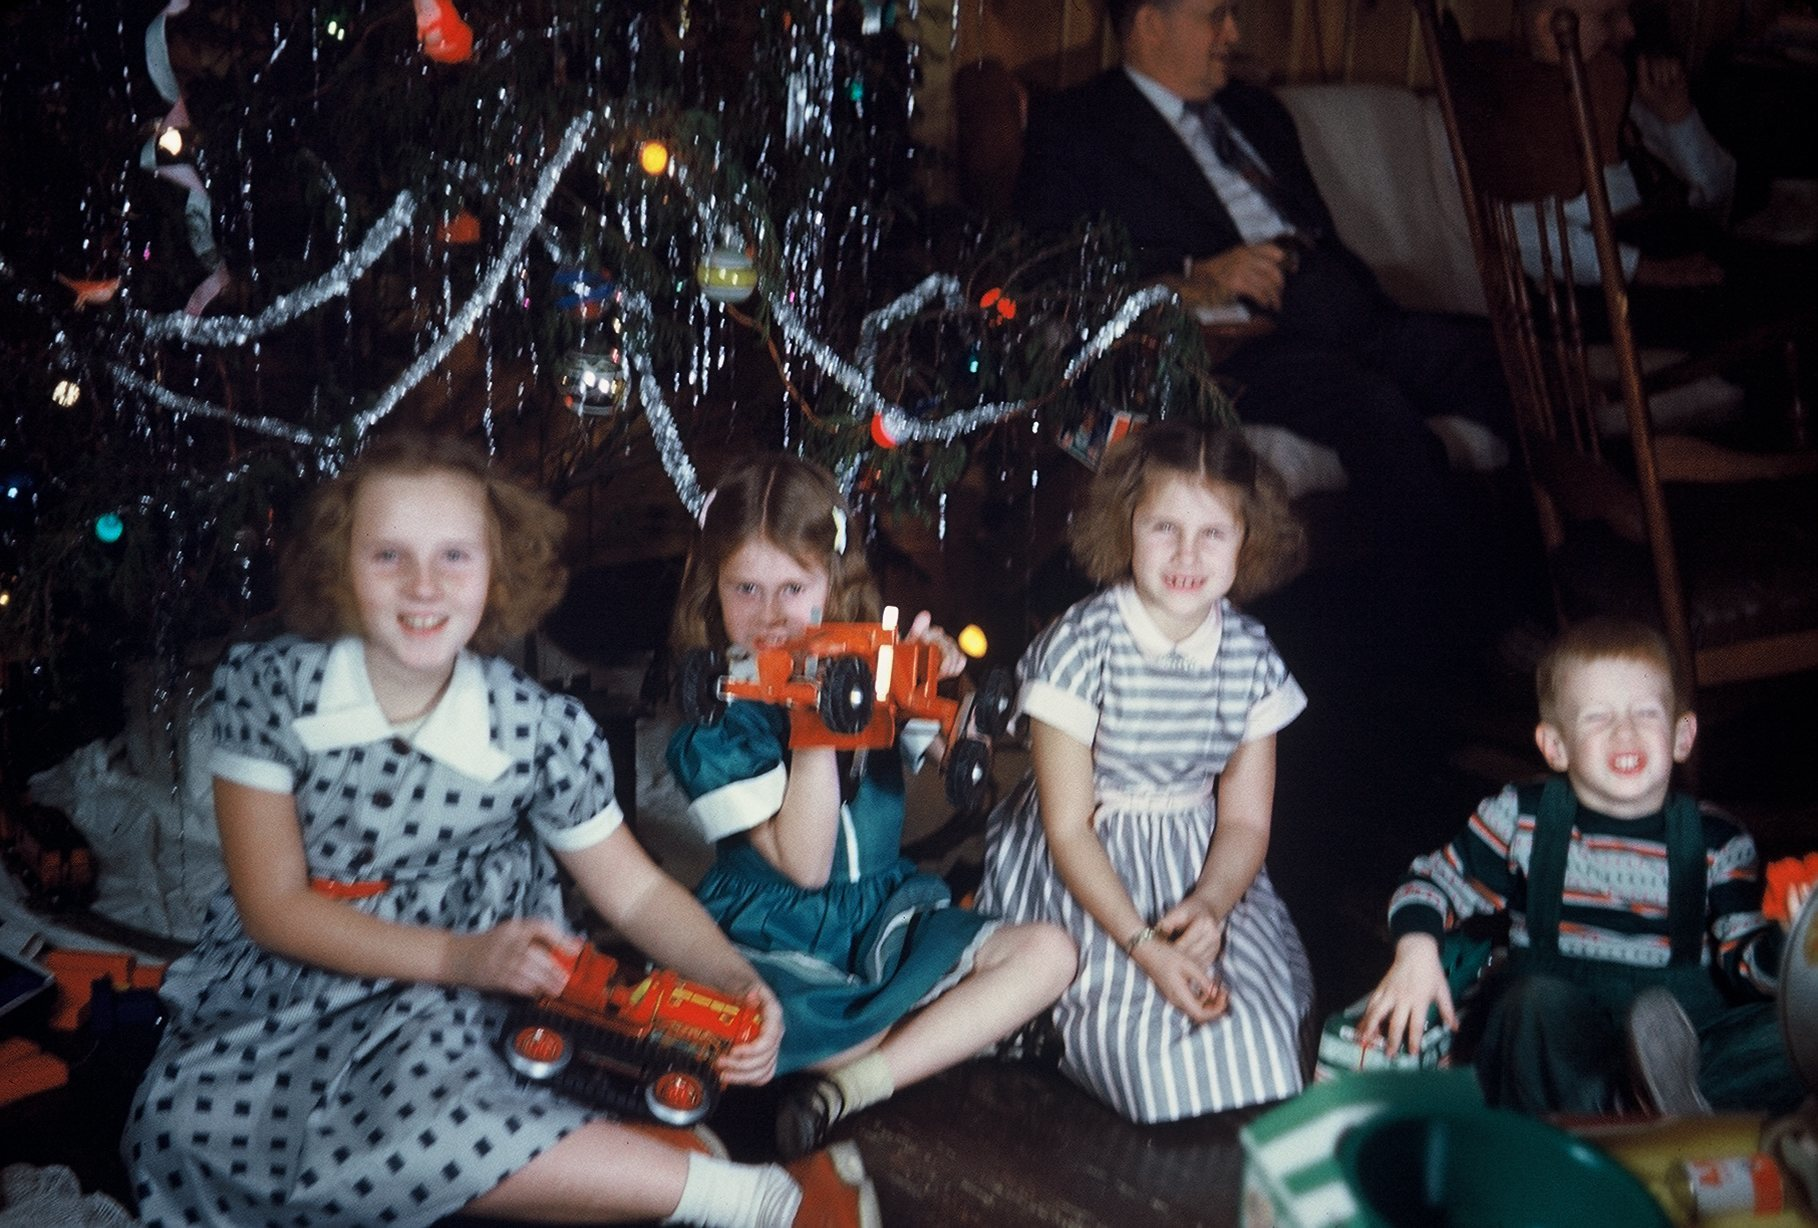 A Merry Mundane Christmas From The 1950s Flashbak